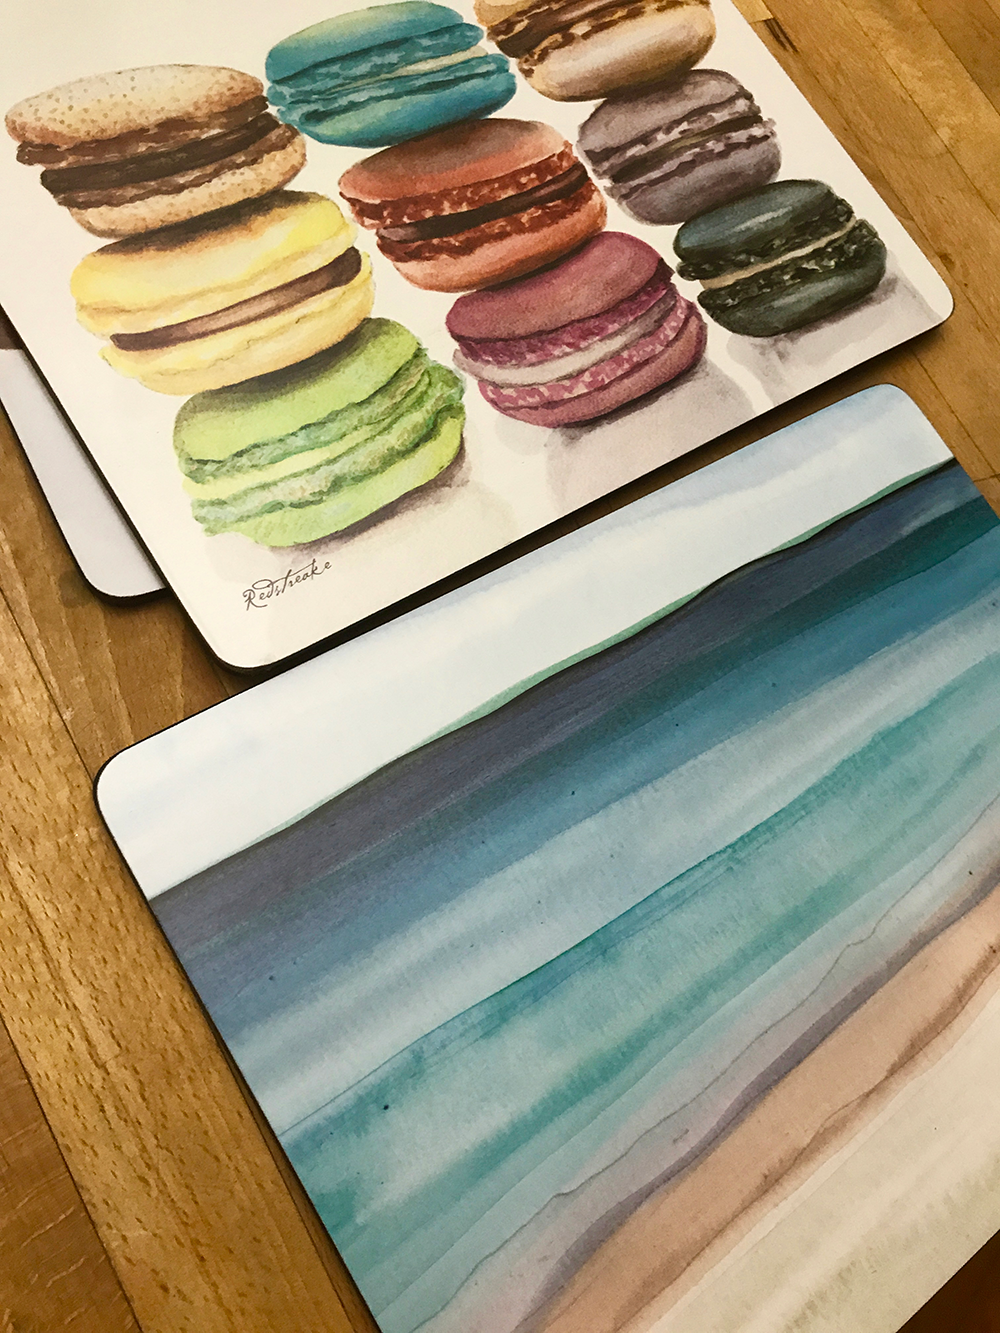 Placemats sold in England